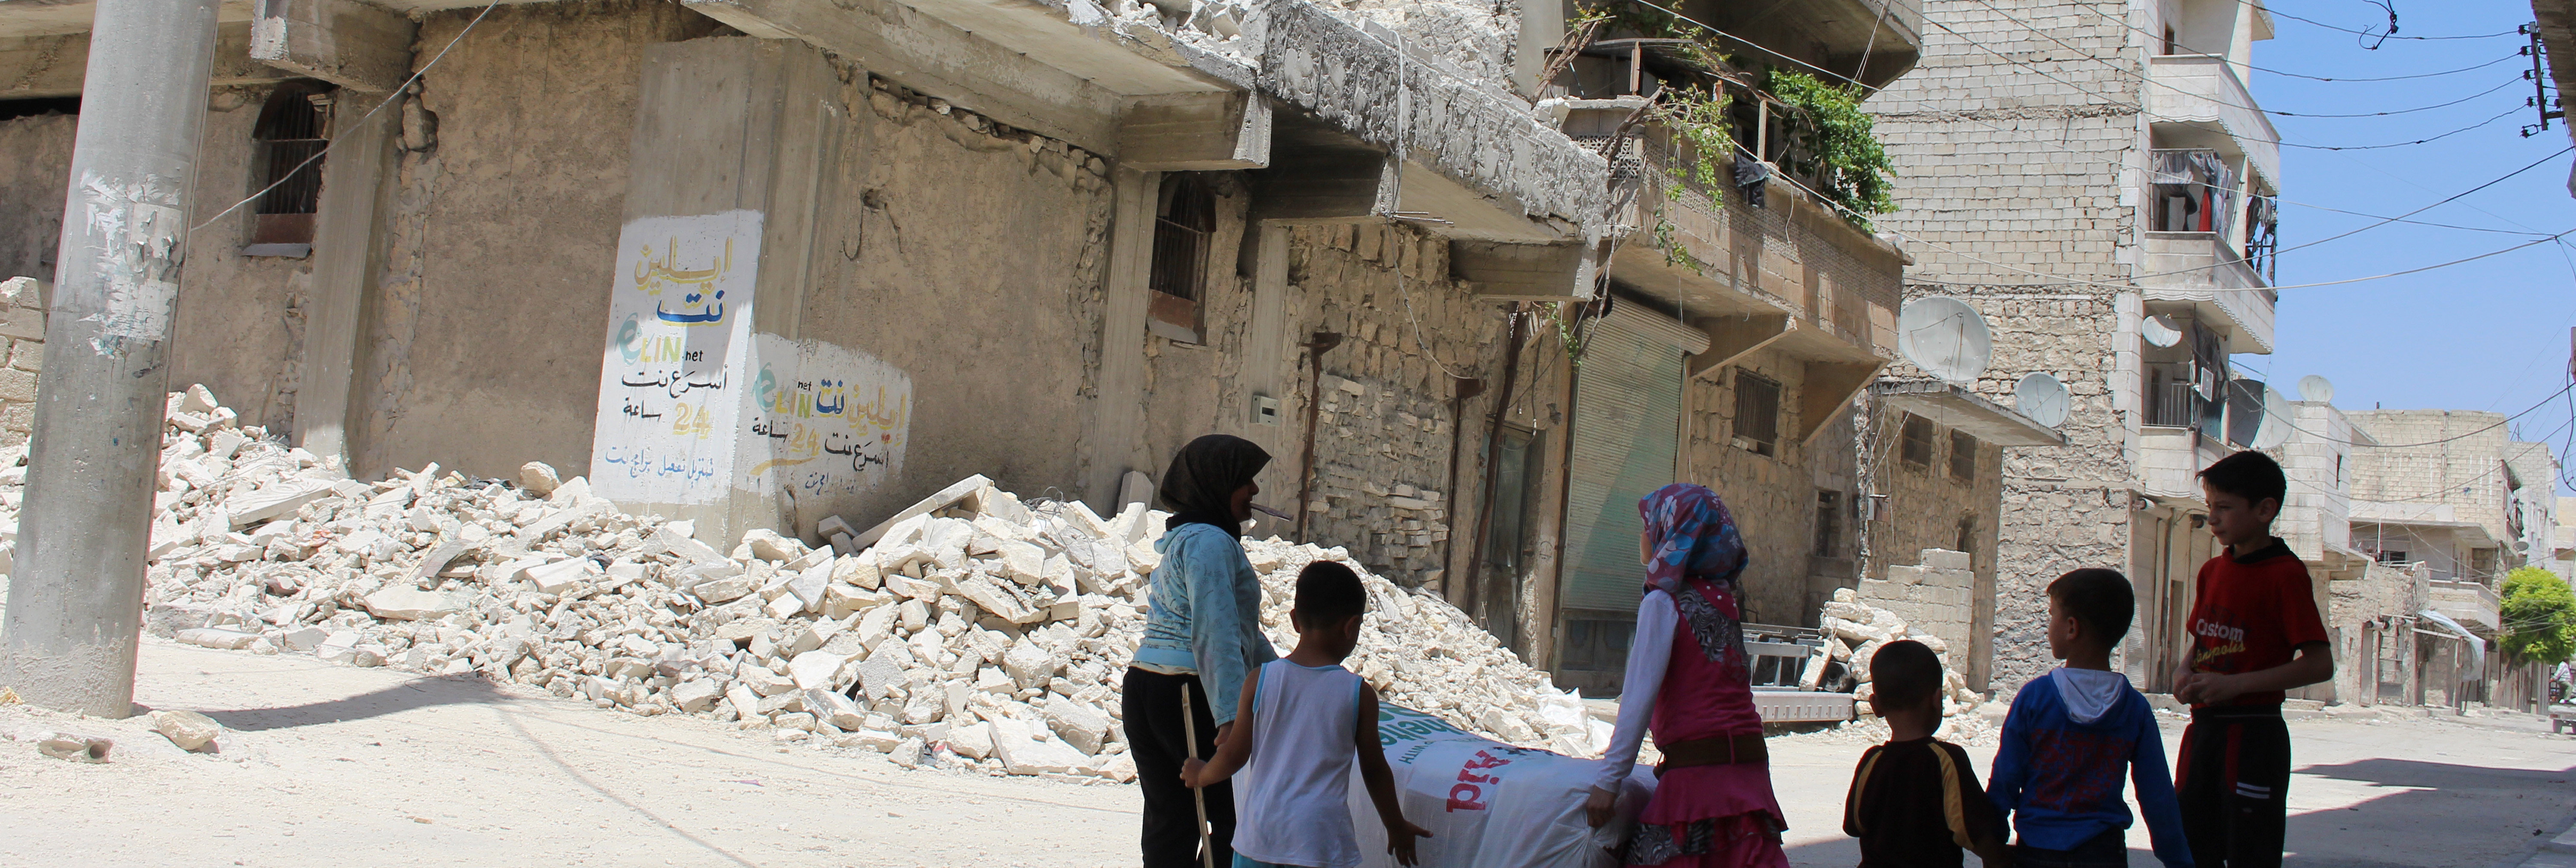 Kids play in street next to buildings damaged by bombing, Syria.